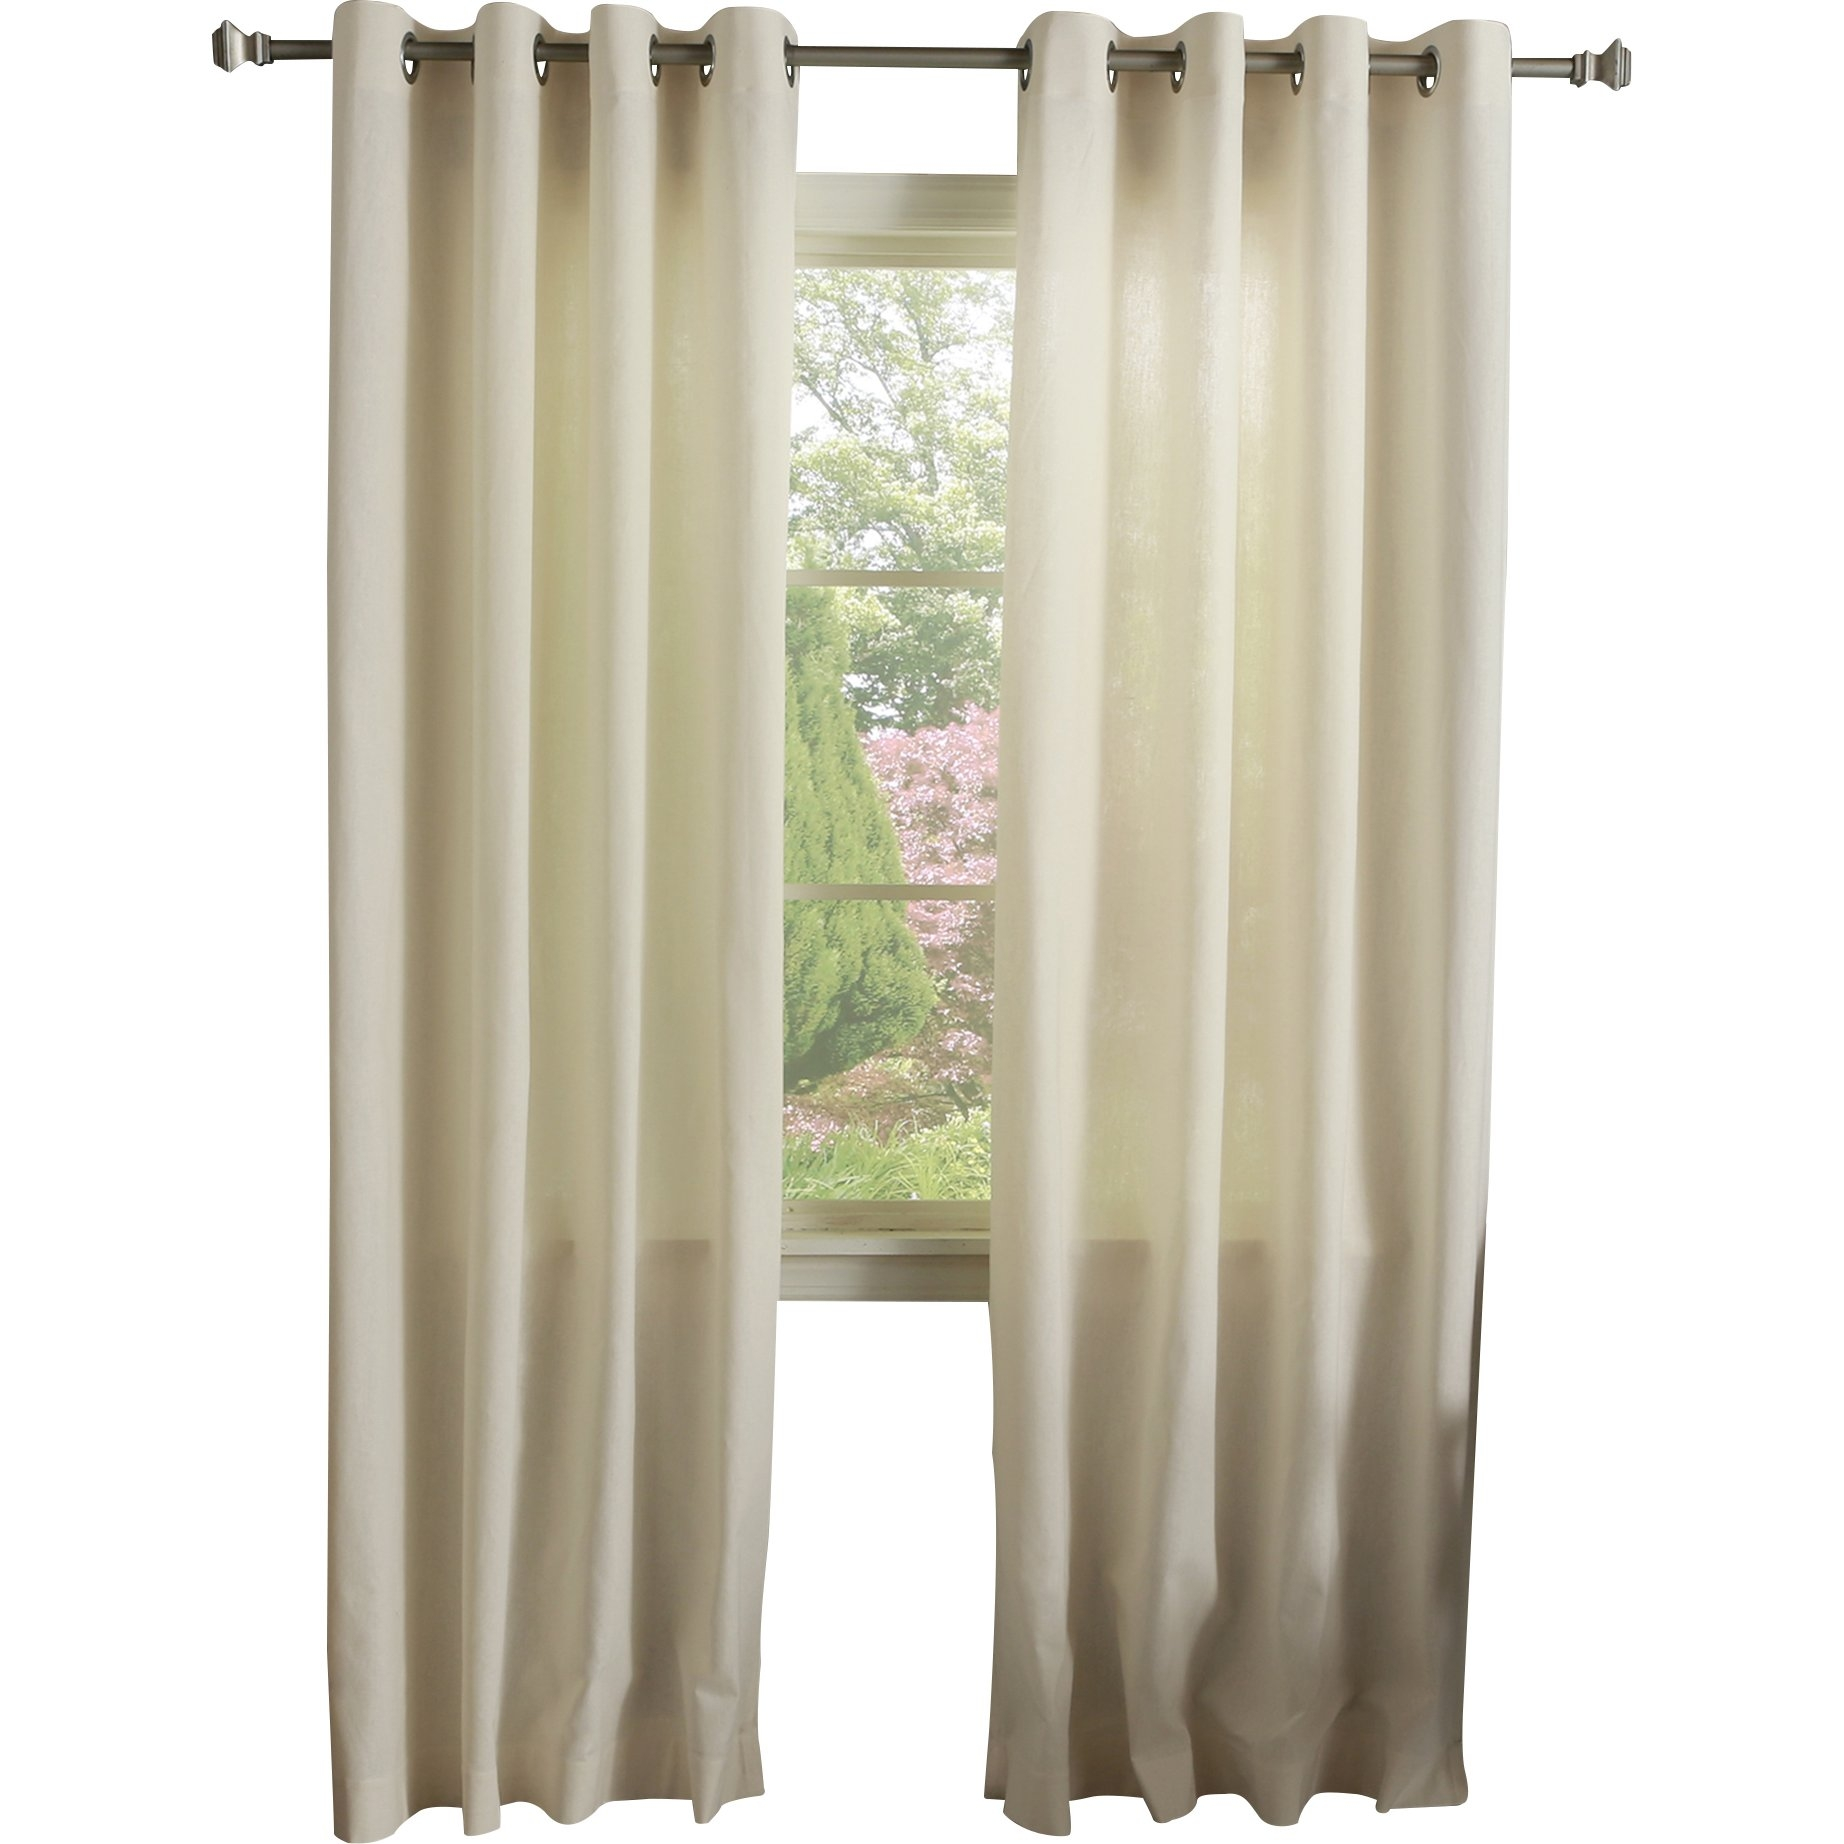 Best Home Fashion Inc Grommet Natural Solid Sheer Curtain Panels With Regard To Natural Curtain Panels (View 9 of 15)